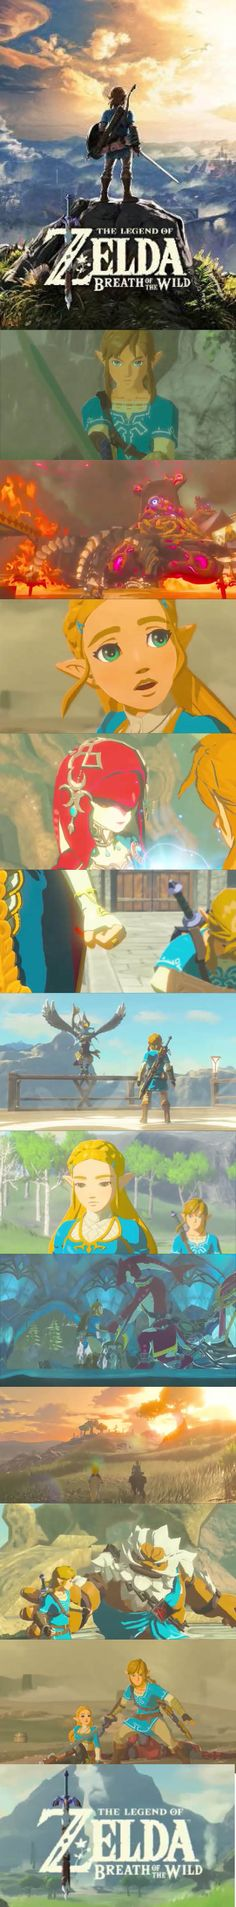 Breath of the Wild is the video game that Zelda gamers have always wanted! 3d Video Games, Video Game News, Legend Of Zelda Breath, Daily Video, Breath Of The Wild, Nerd Stuff, Cool Stuff, Videogames, Breathe